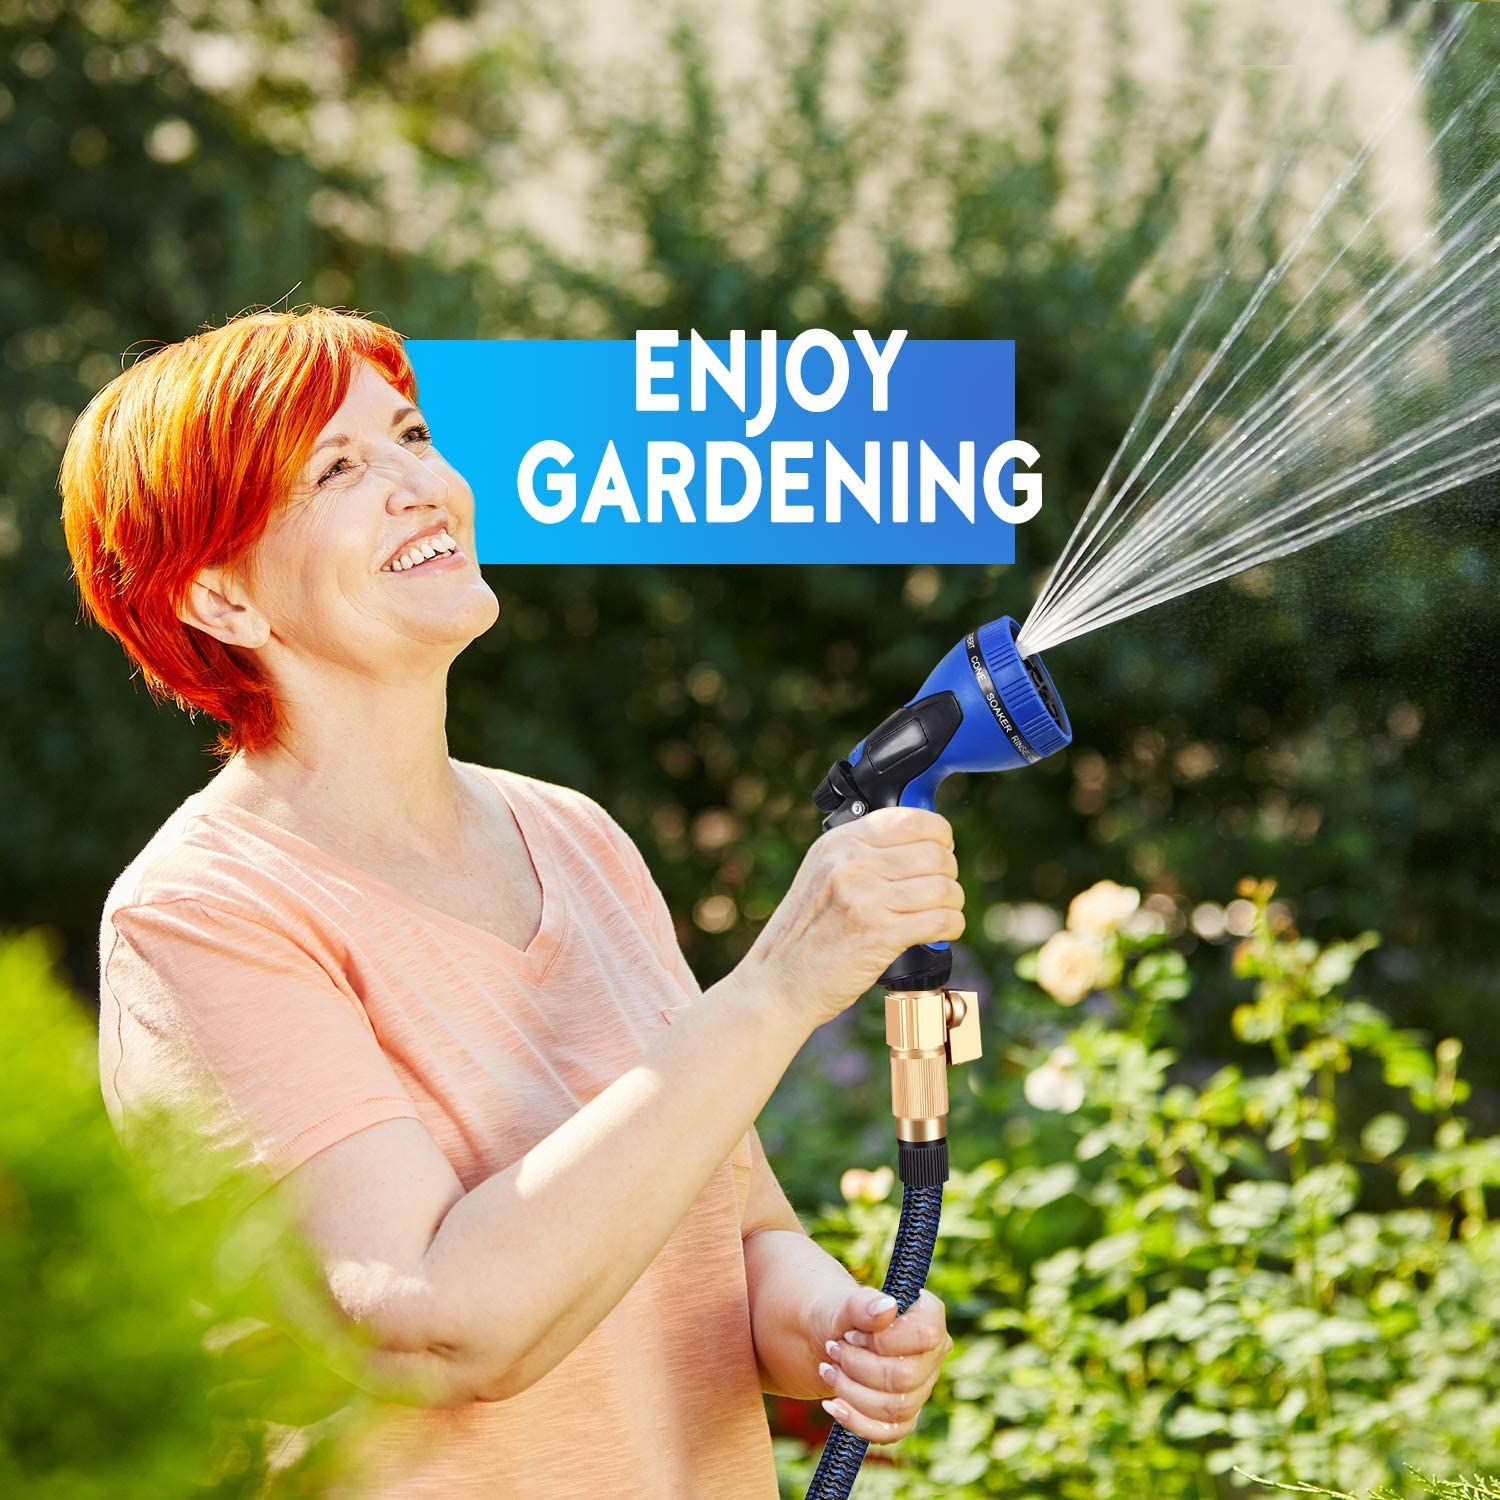 MURLONG Garden Hose 100ft Expandable Water Hose with 10 Function Spray Nozzle,Leakproof Lightweight Flexible Water Hose with Solid Brass Fittings,Extra Strength 3750D Durable Gardening Flexible Hose: Home Improvement